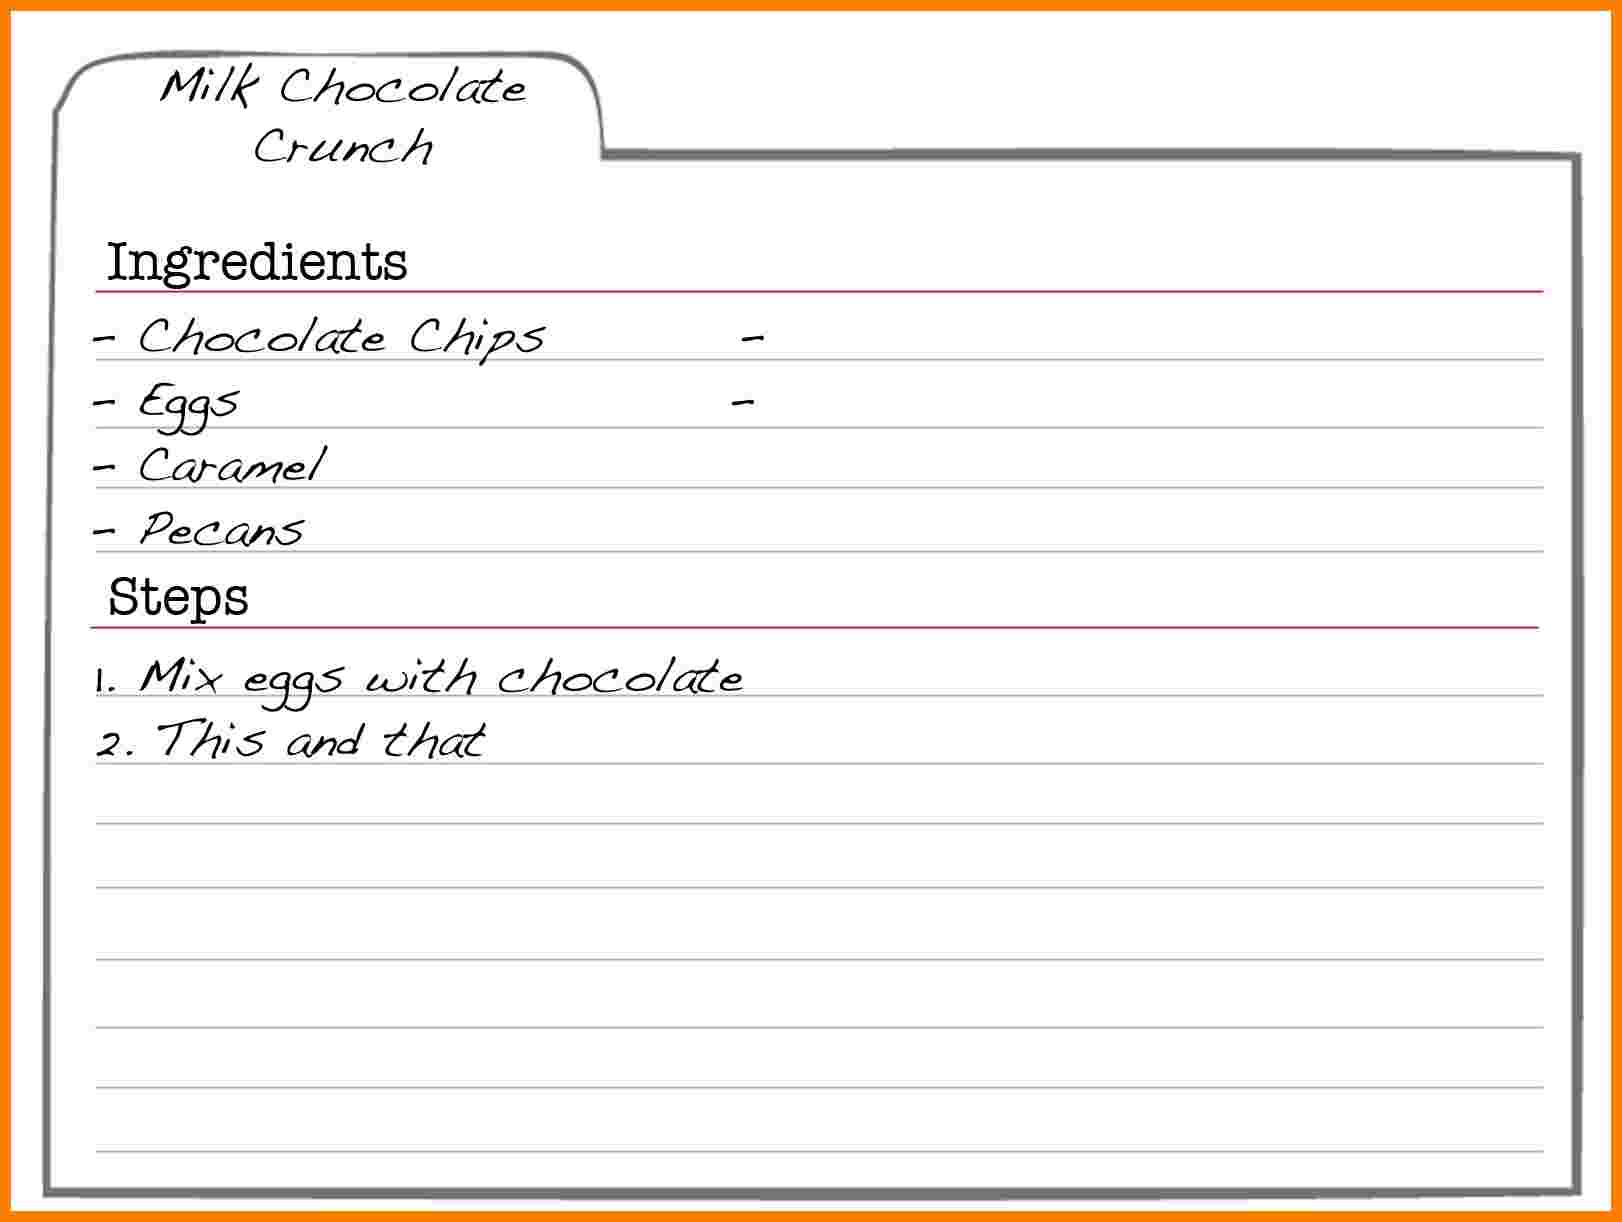 How To Make A Recipe Card In Word - Image Of Food Recipe Regarding Full Page Recipe Template For Word